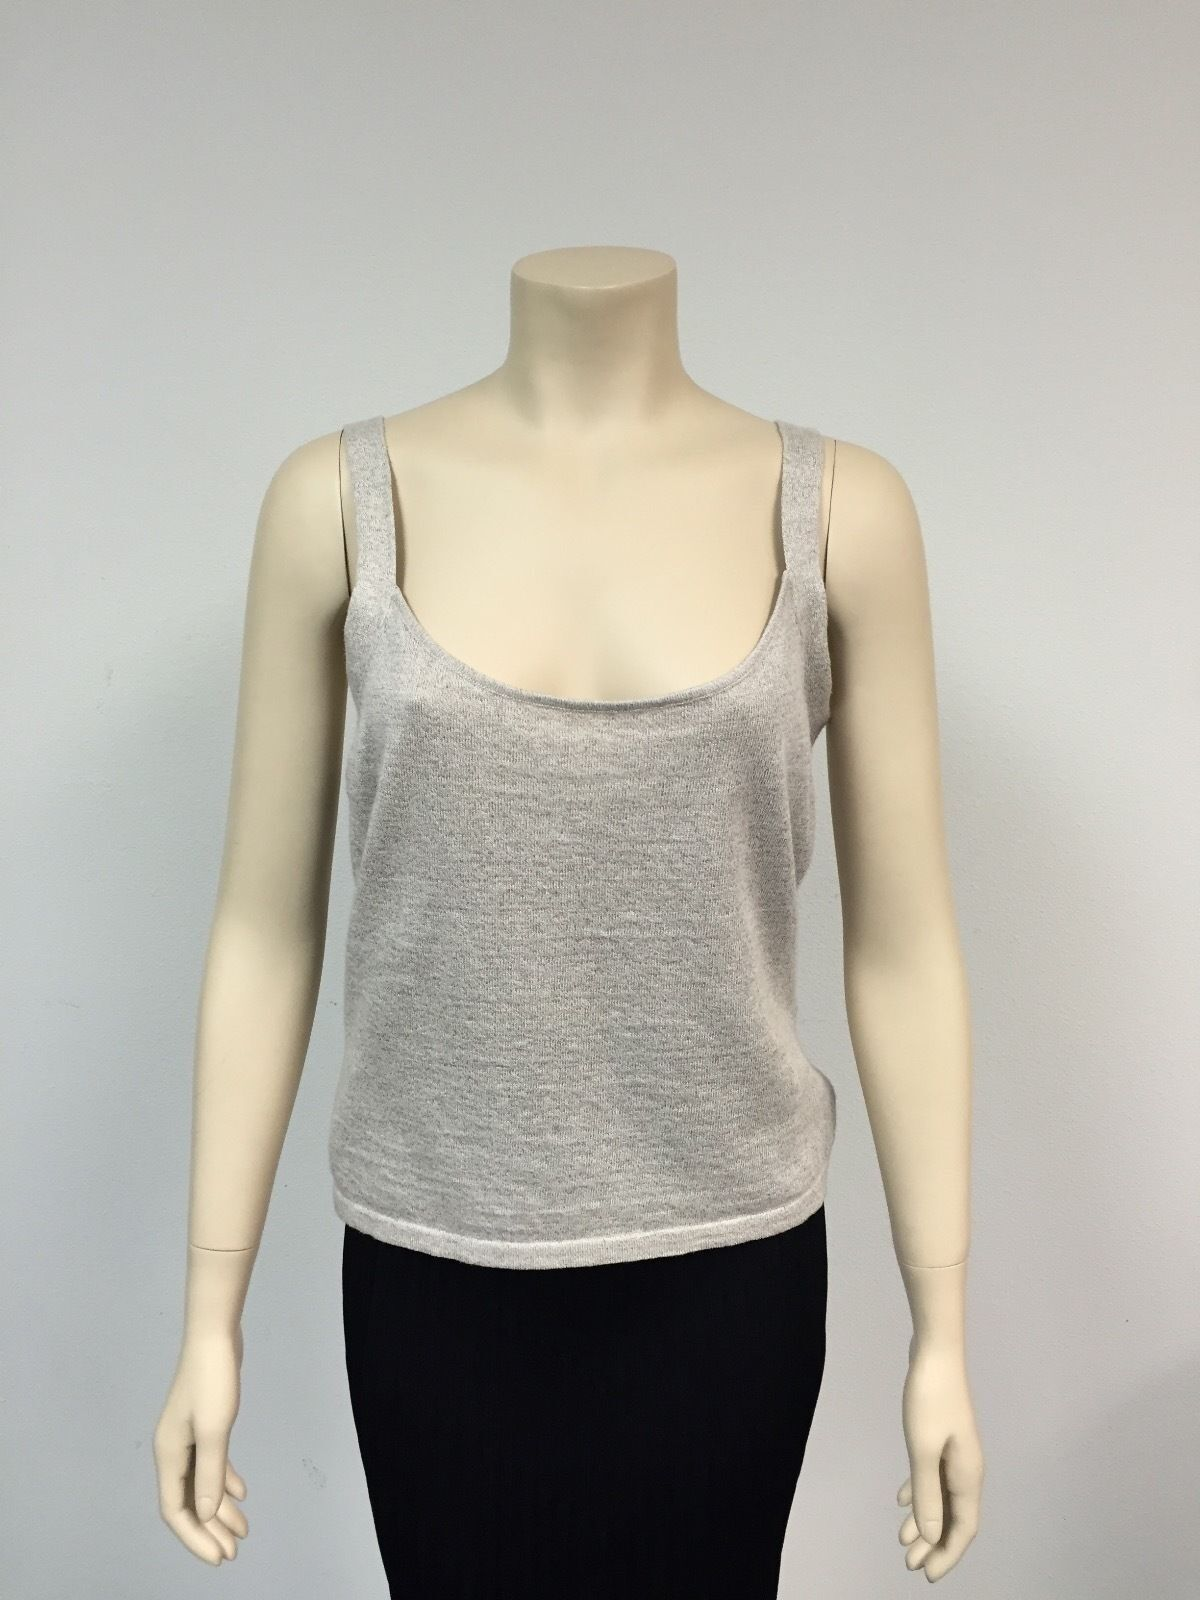 NWT 100% Authentic Valentino Top, Made in